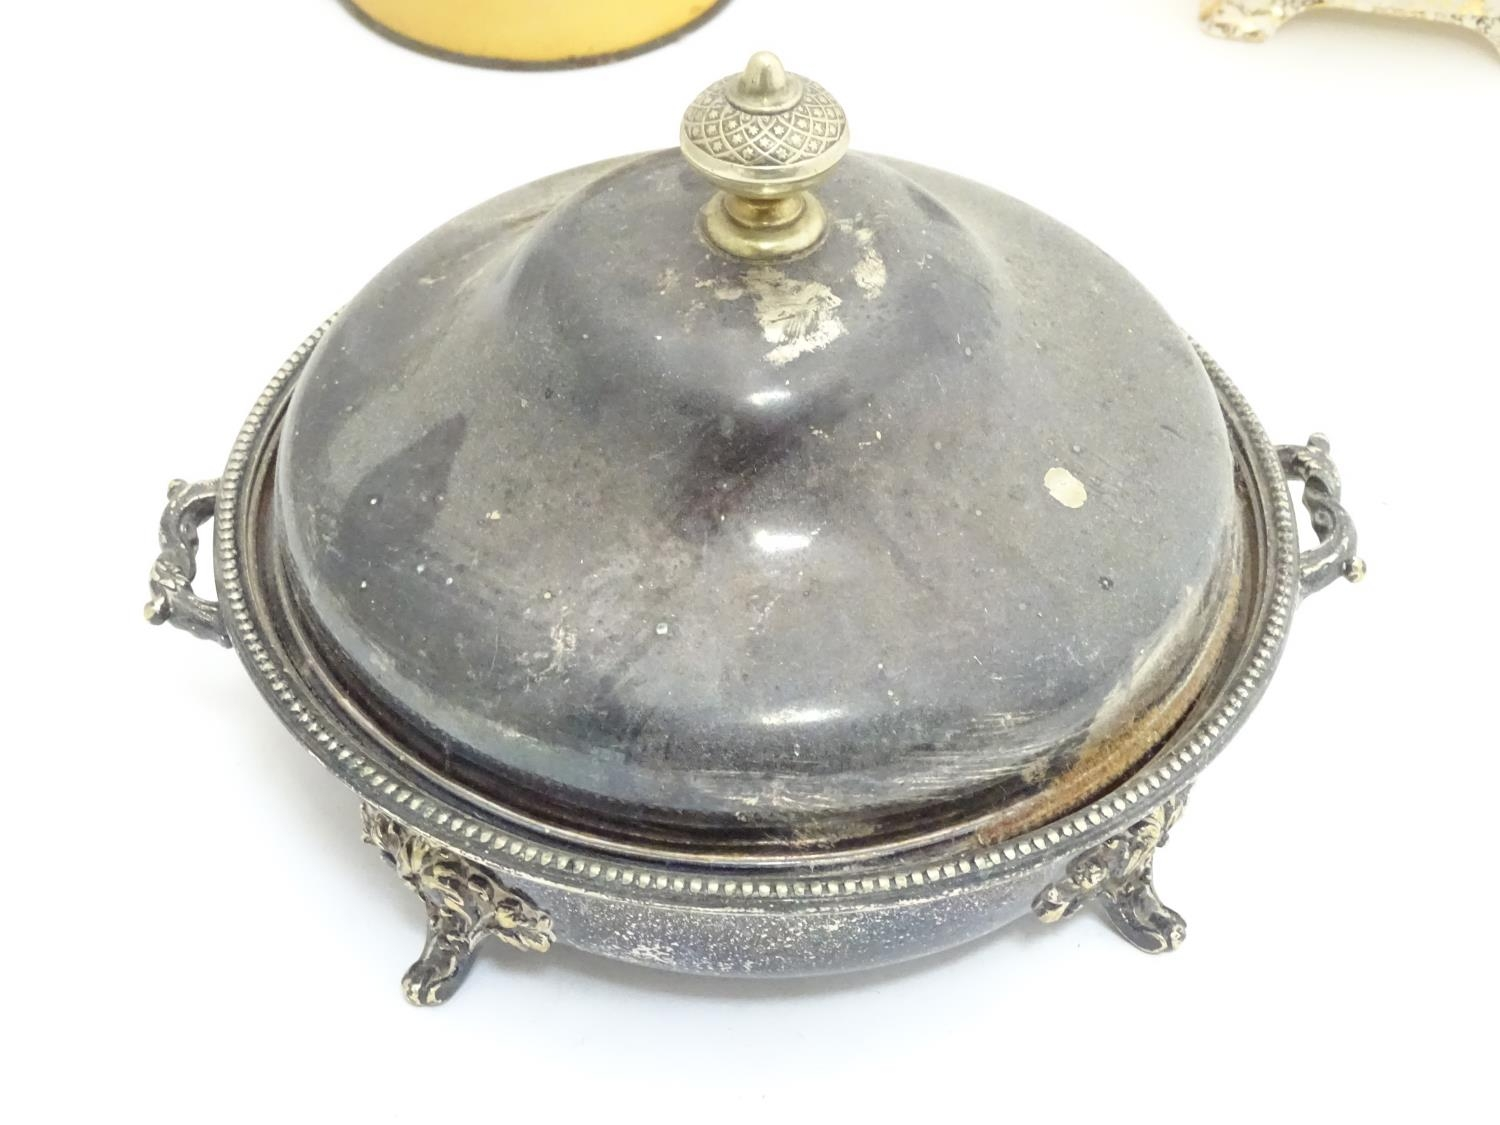 A quantity of silver plated items to include a biscuit barrel, toast rack, sauce boat, tongs, etc. - Image 14 of 30